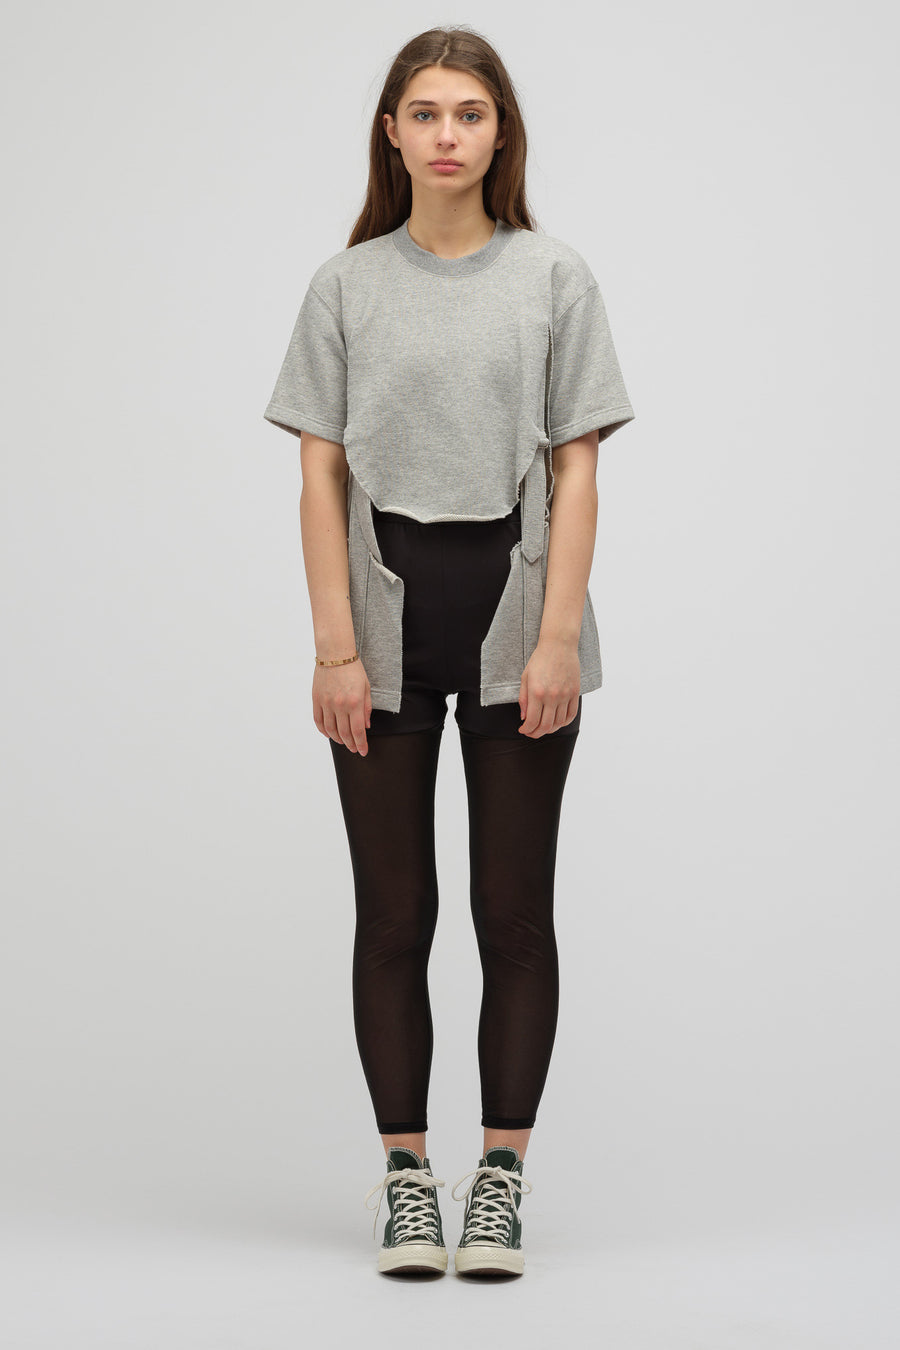 HYKE Knit Leggings in Black - Notre